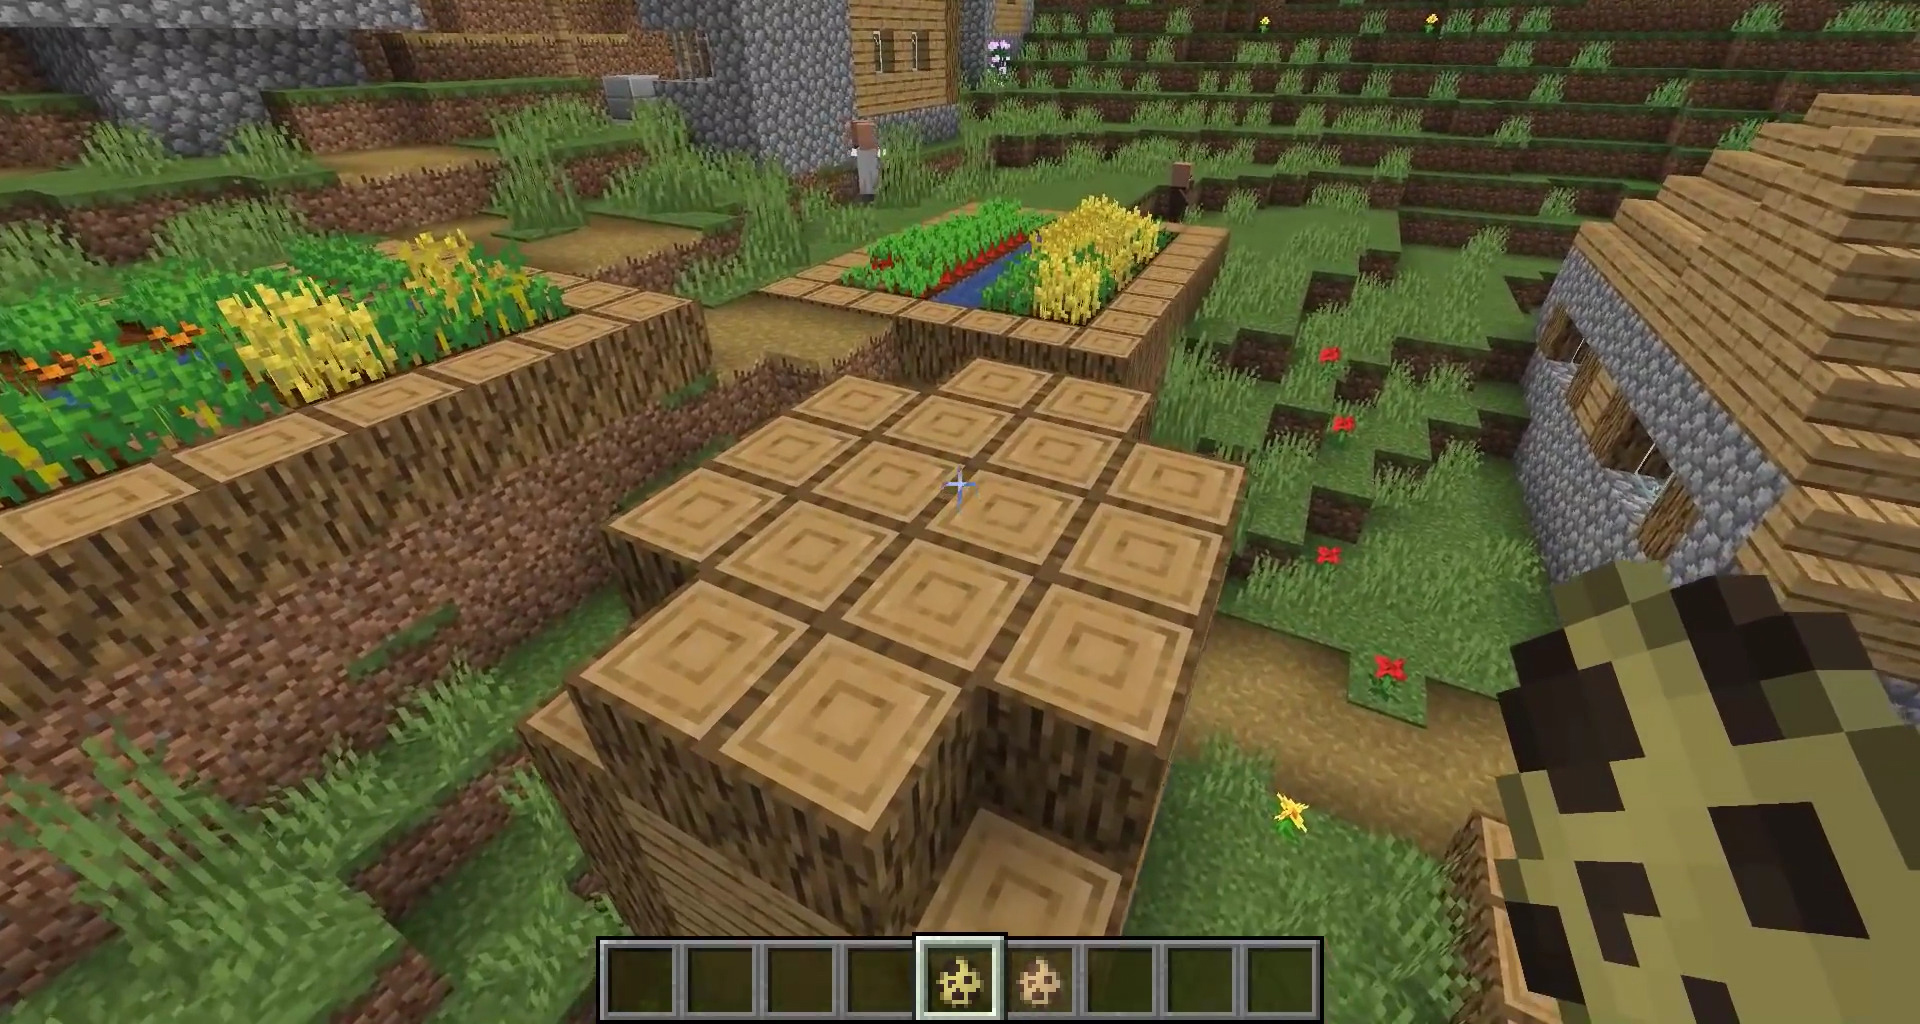 Minecraft 1.14 Snapshot 18w44a Screenshots 10